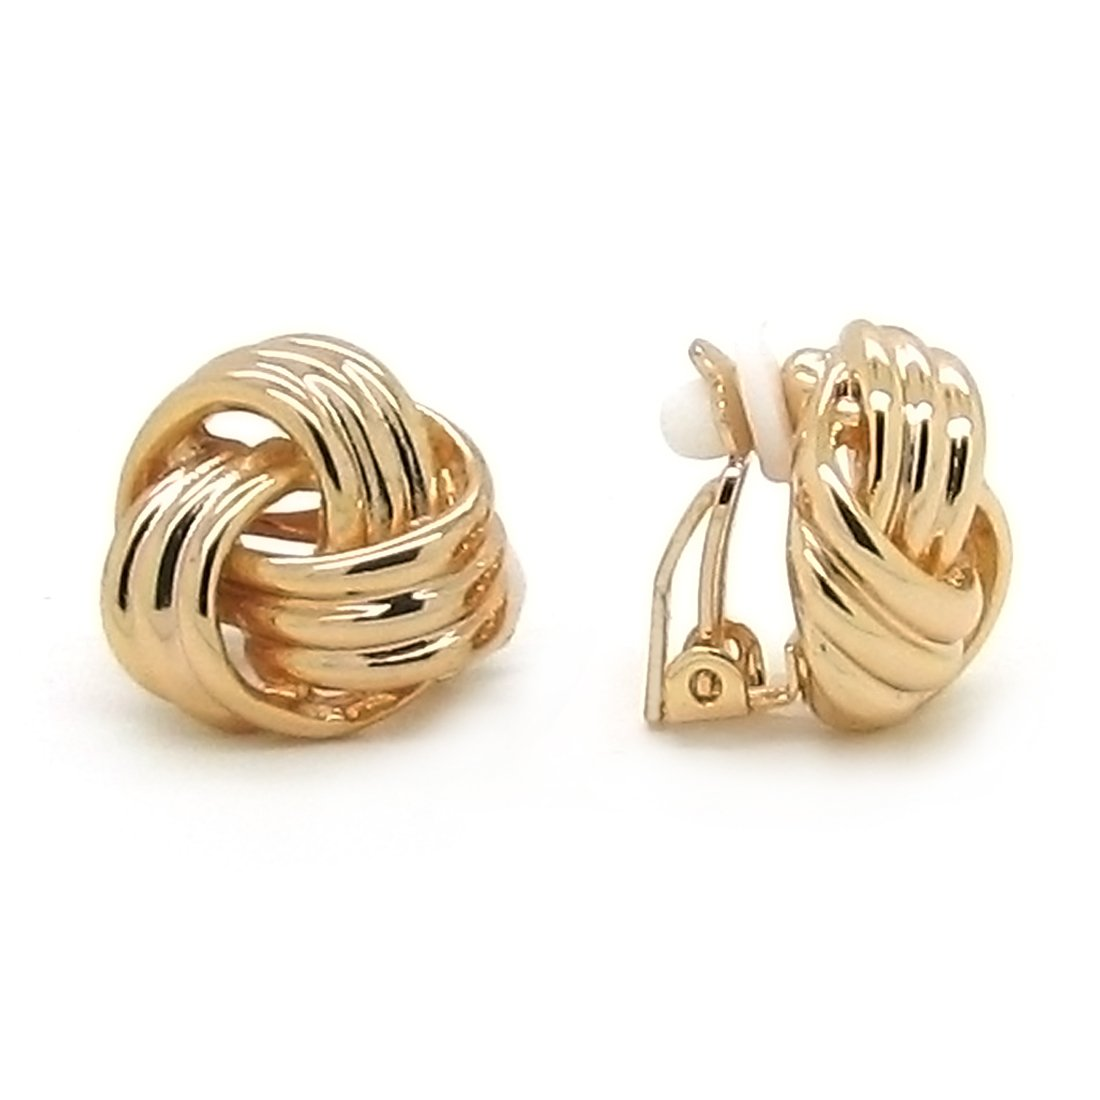 clip-on earrings-vintage-gold-plated-clip